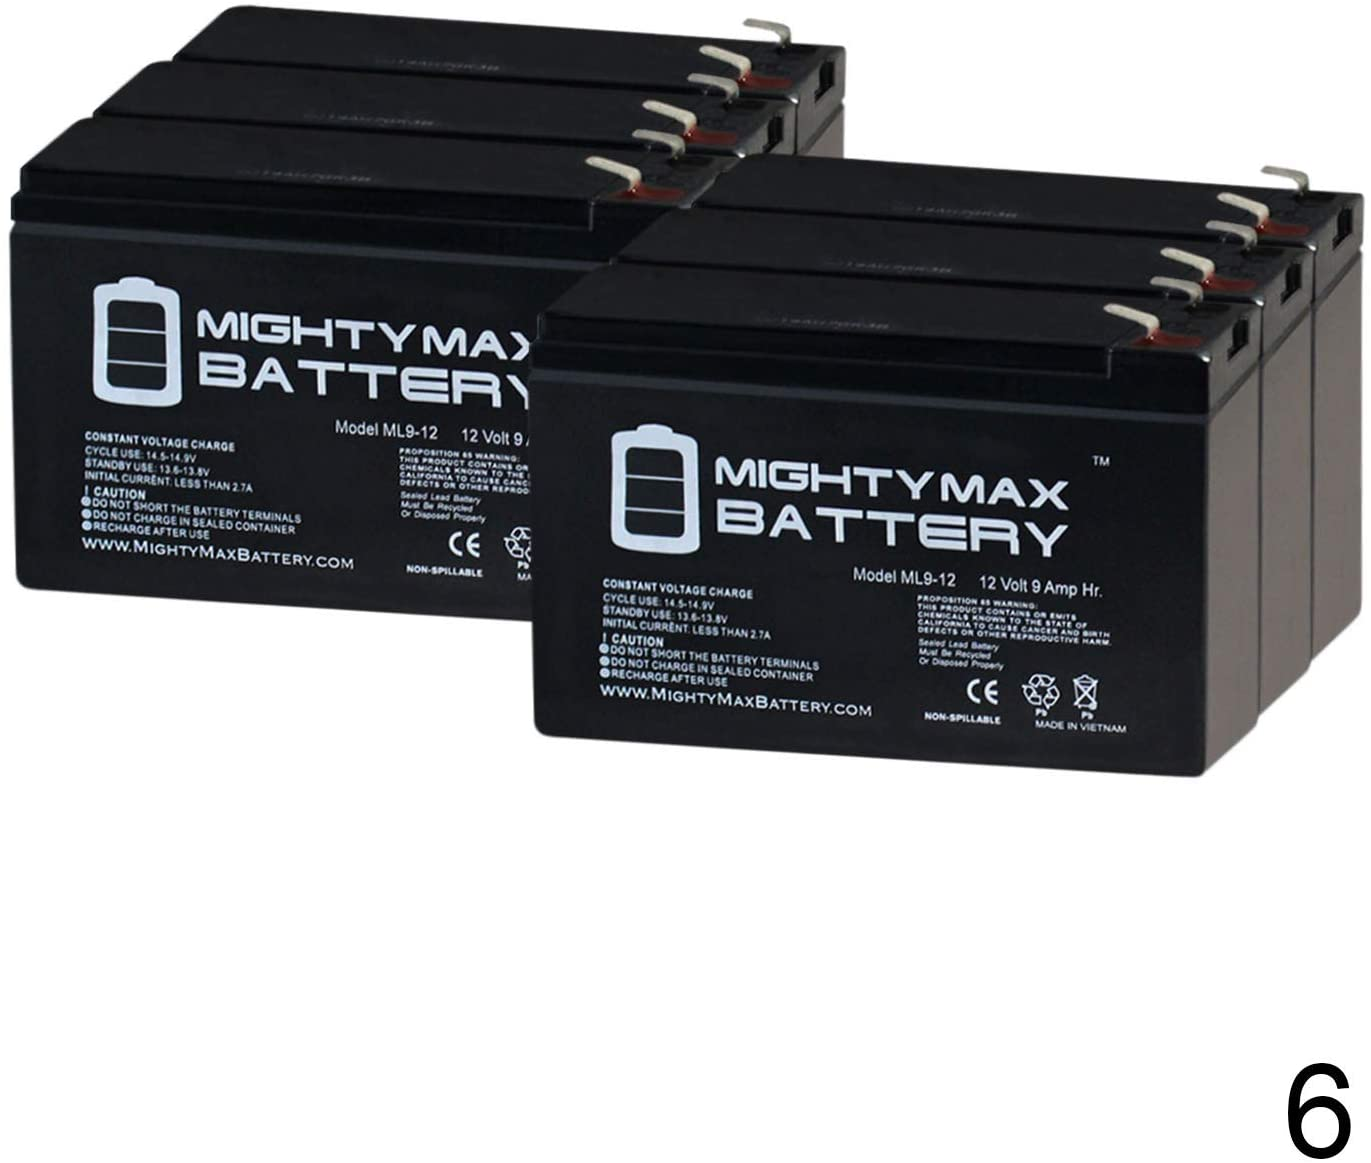 Mighty Max Battery Altronix AL100UL 12V, 9Ah Lead Acid Battery - 6 Pack Brand Product